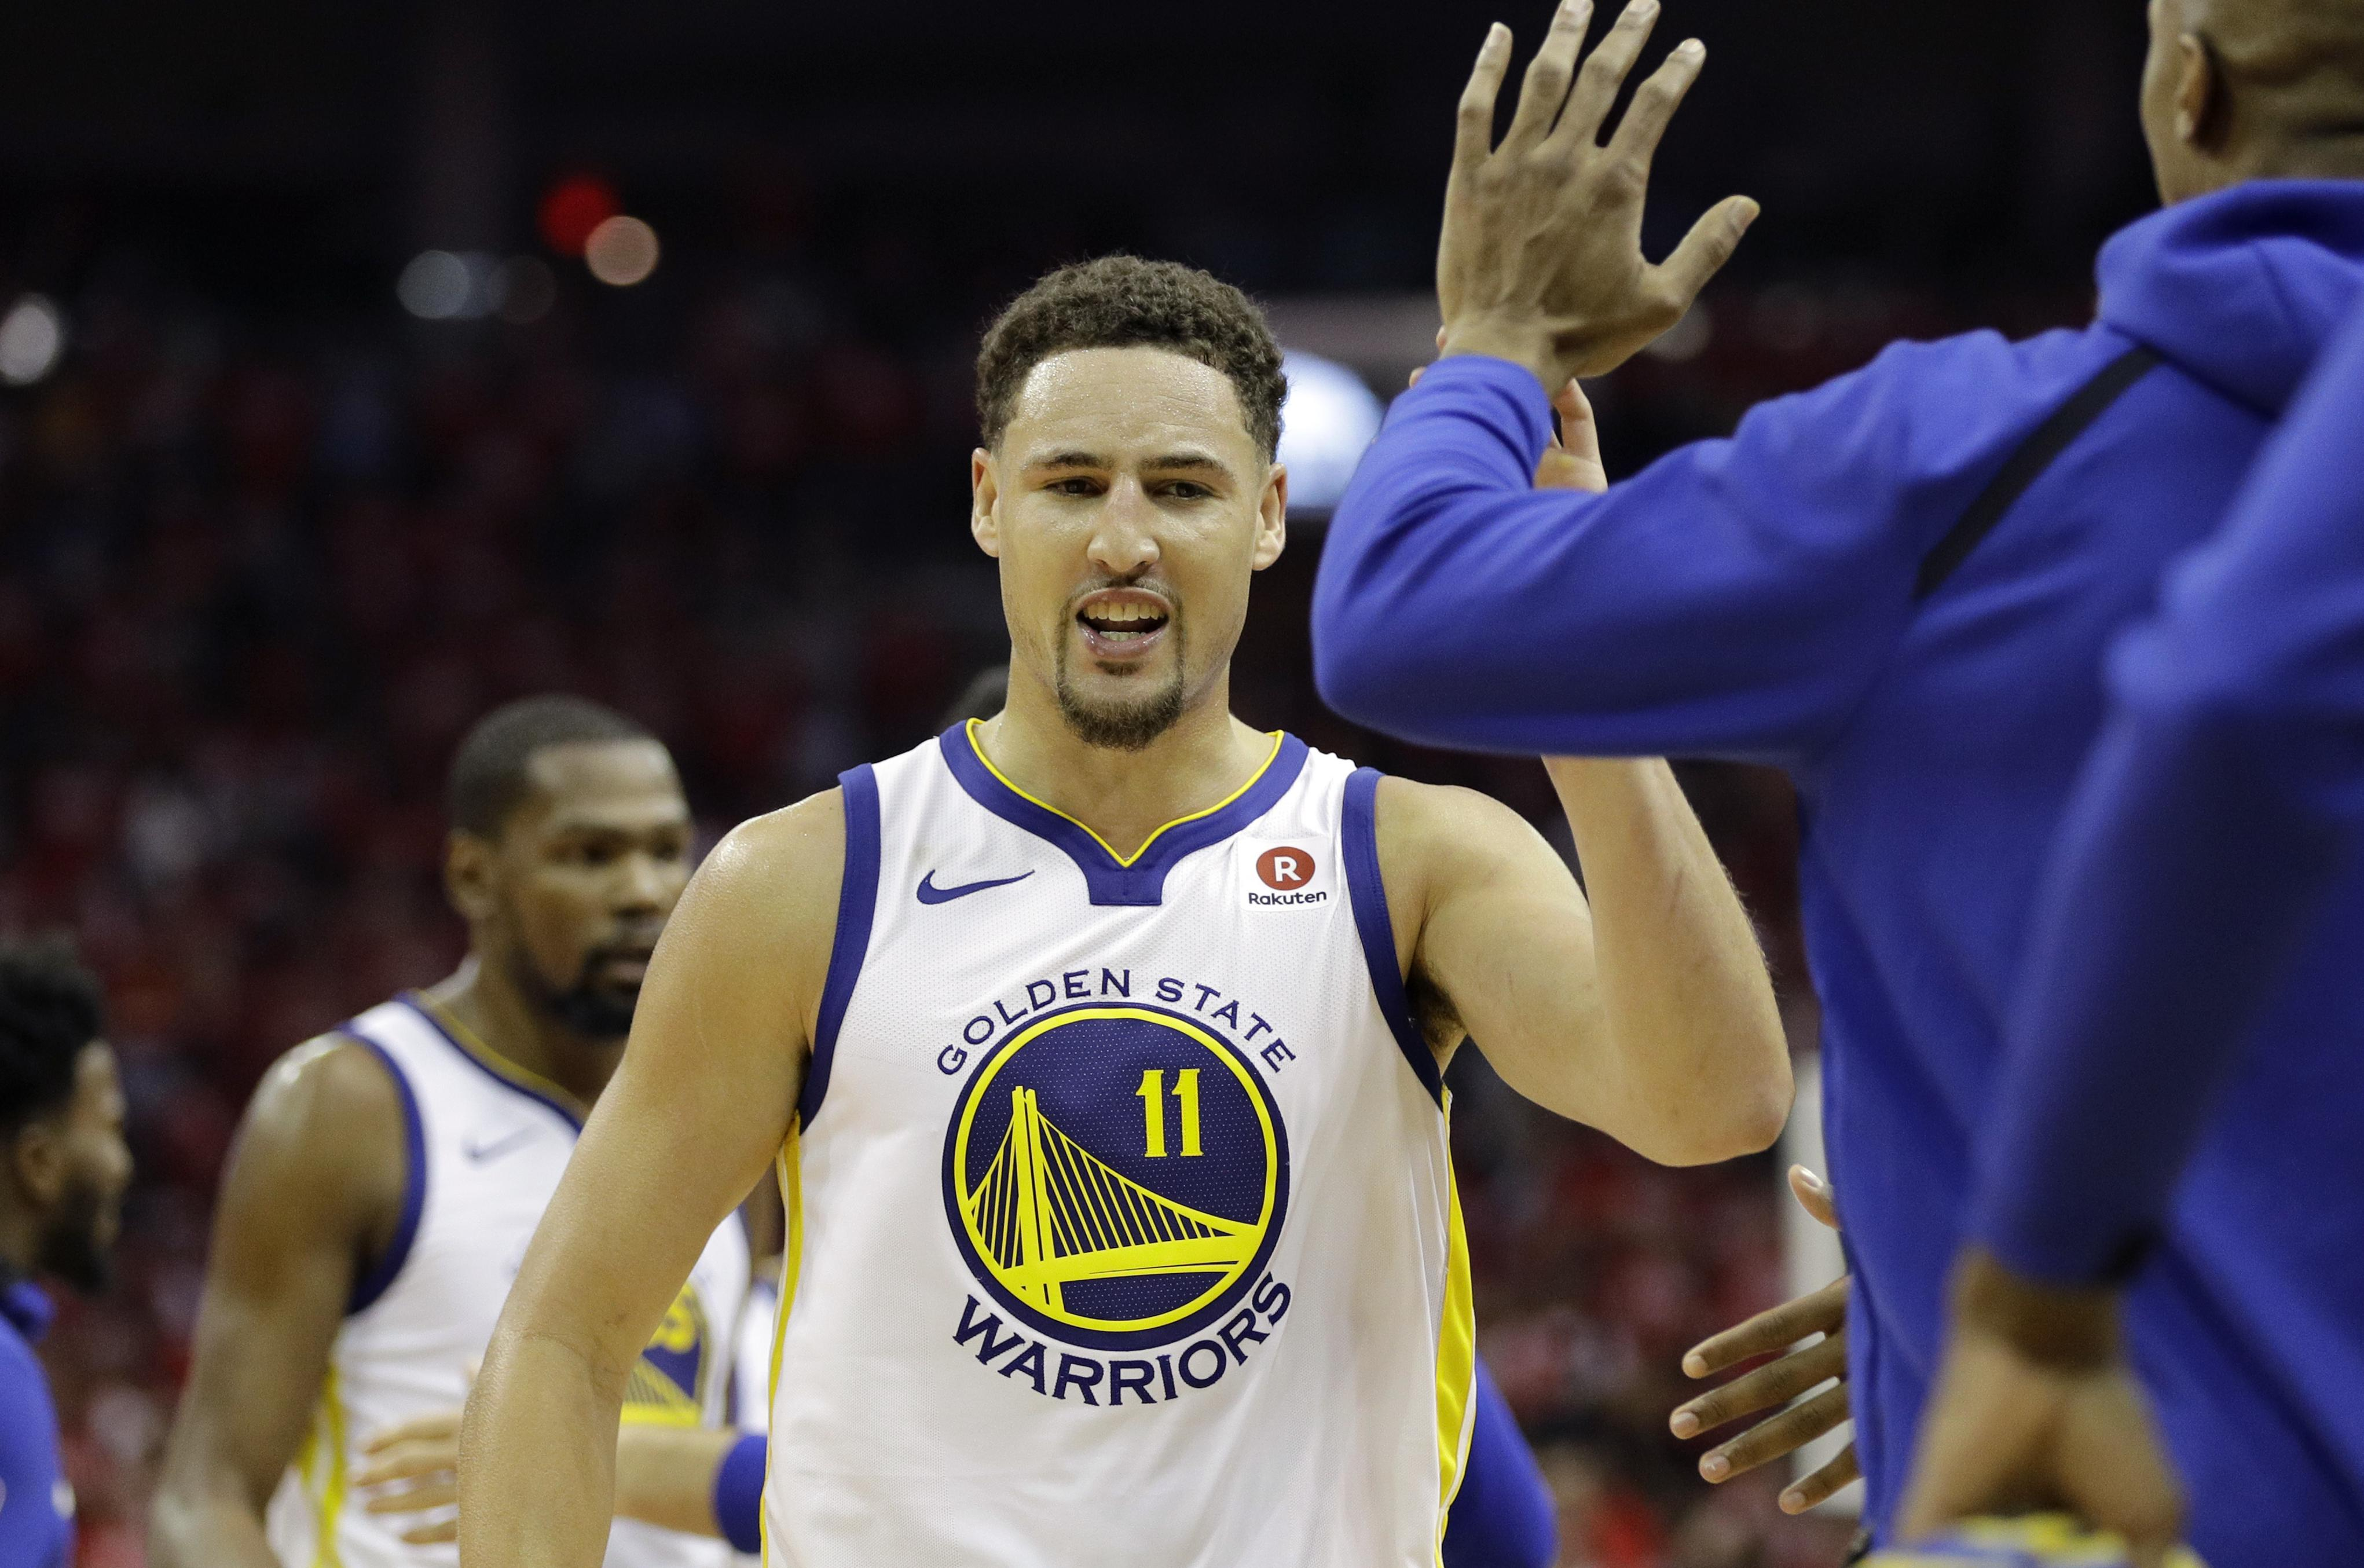 a628e792f86 Golden State Warriors guard Klay Thompson (11) celebrates with teammates  during the second half